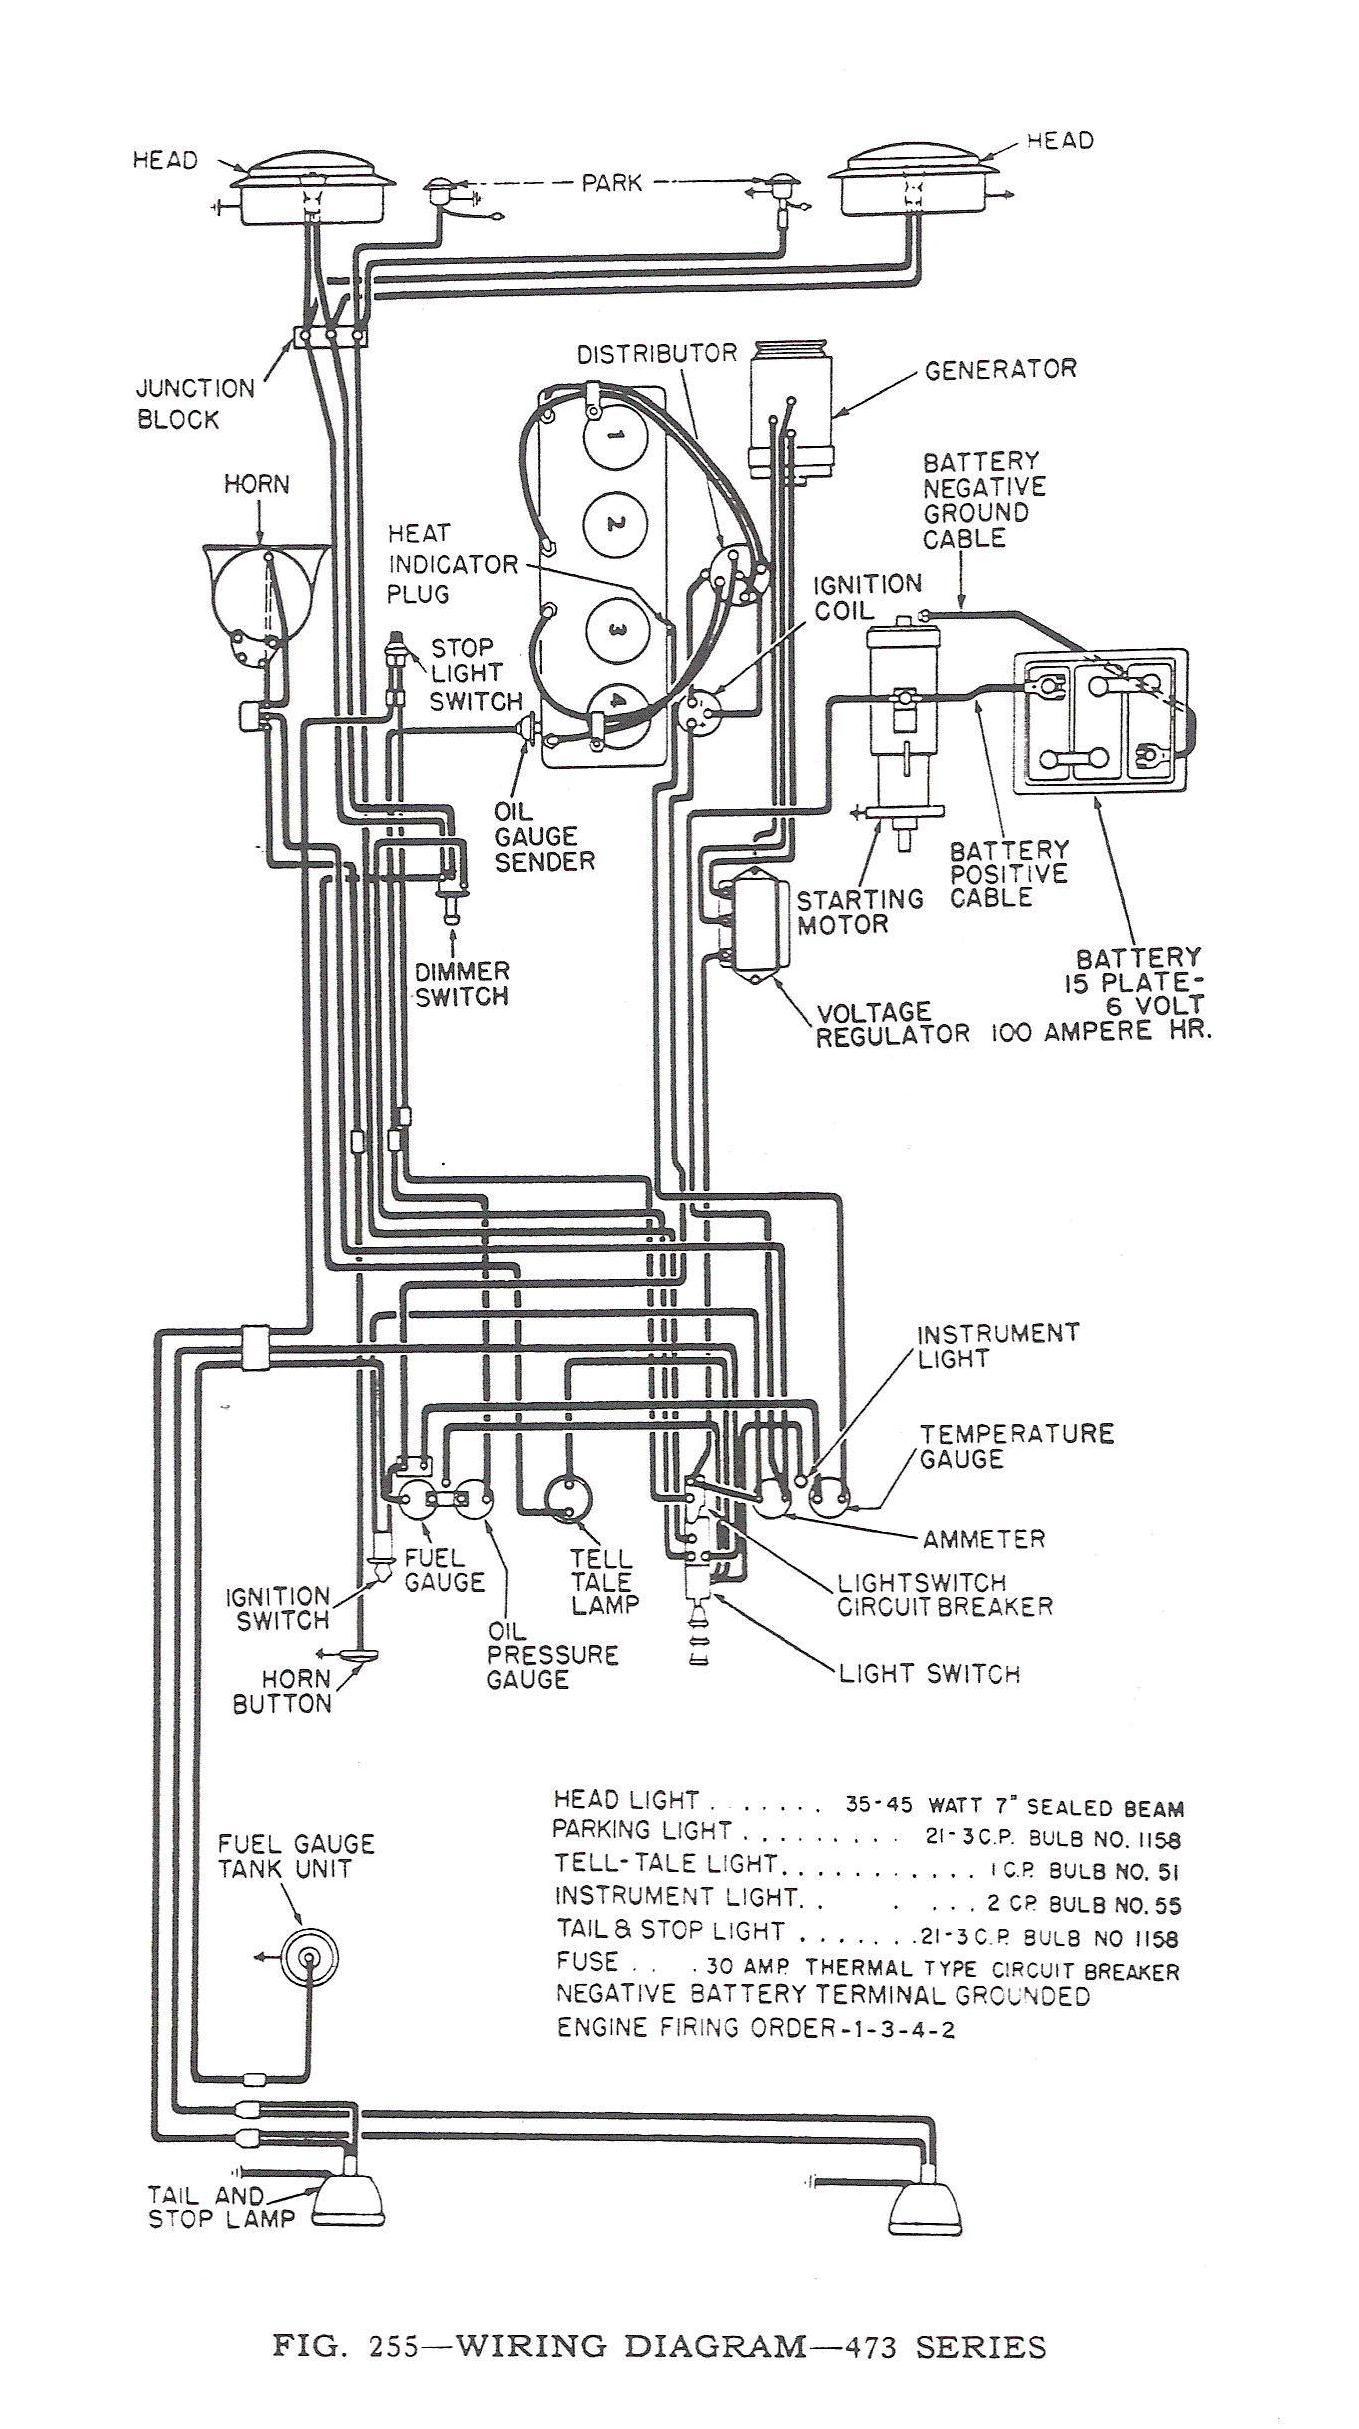 hight resolution of 1952 jeep series 473 wiring diagrams google search willis overland jeep willys jeep